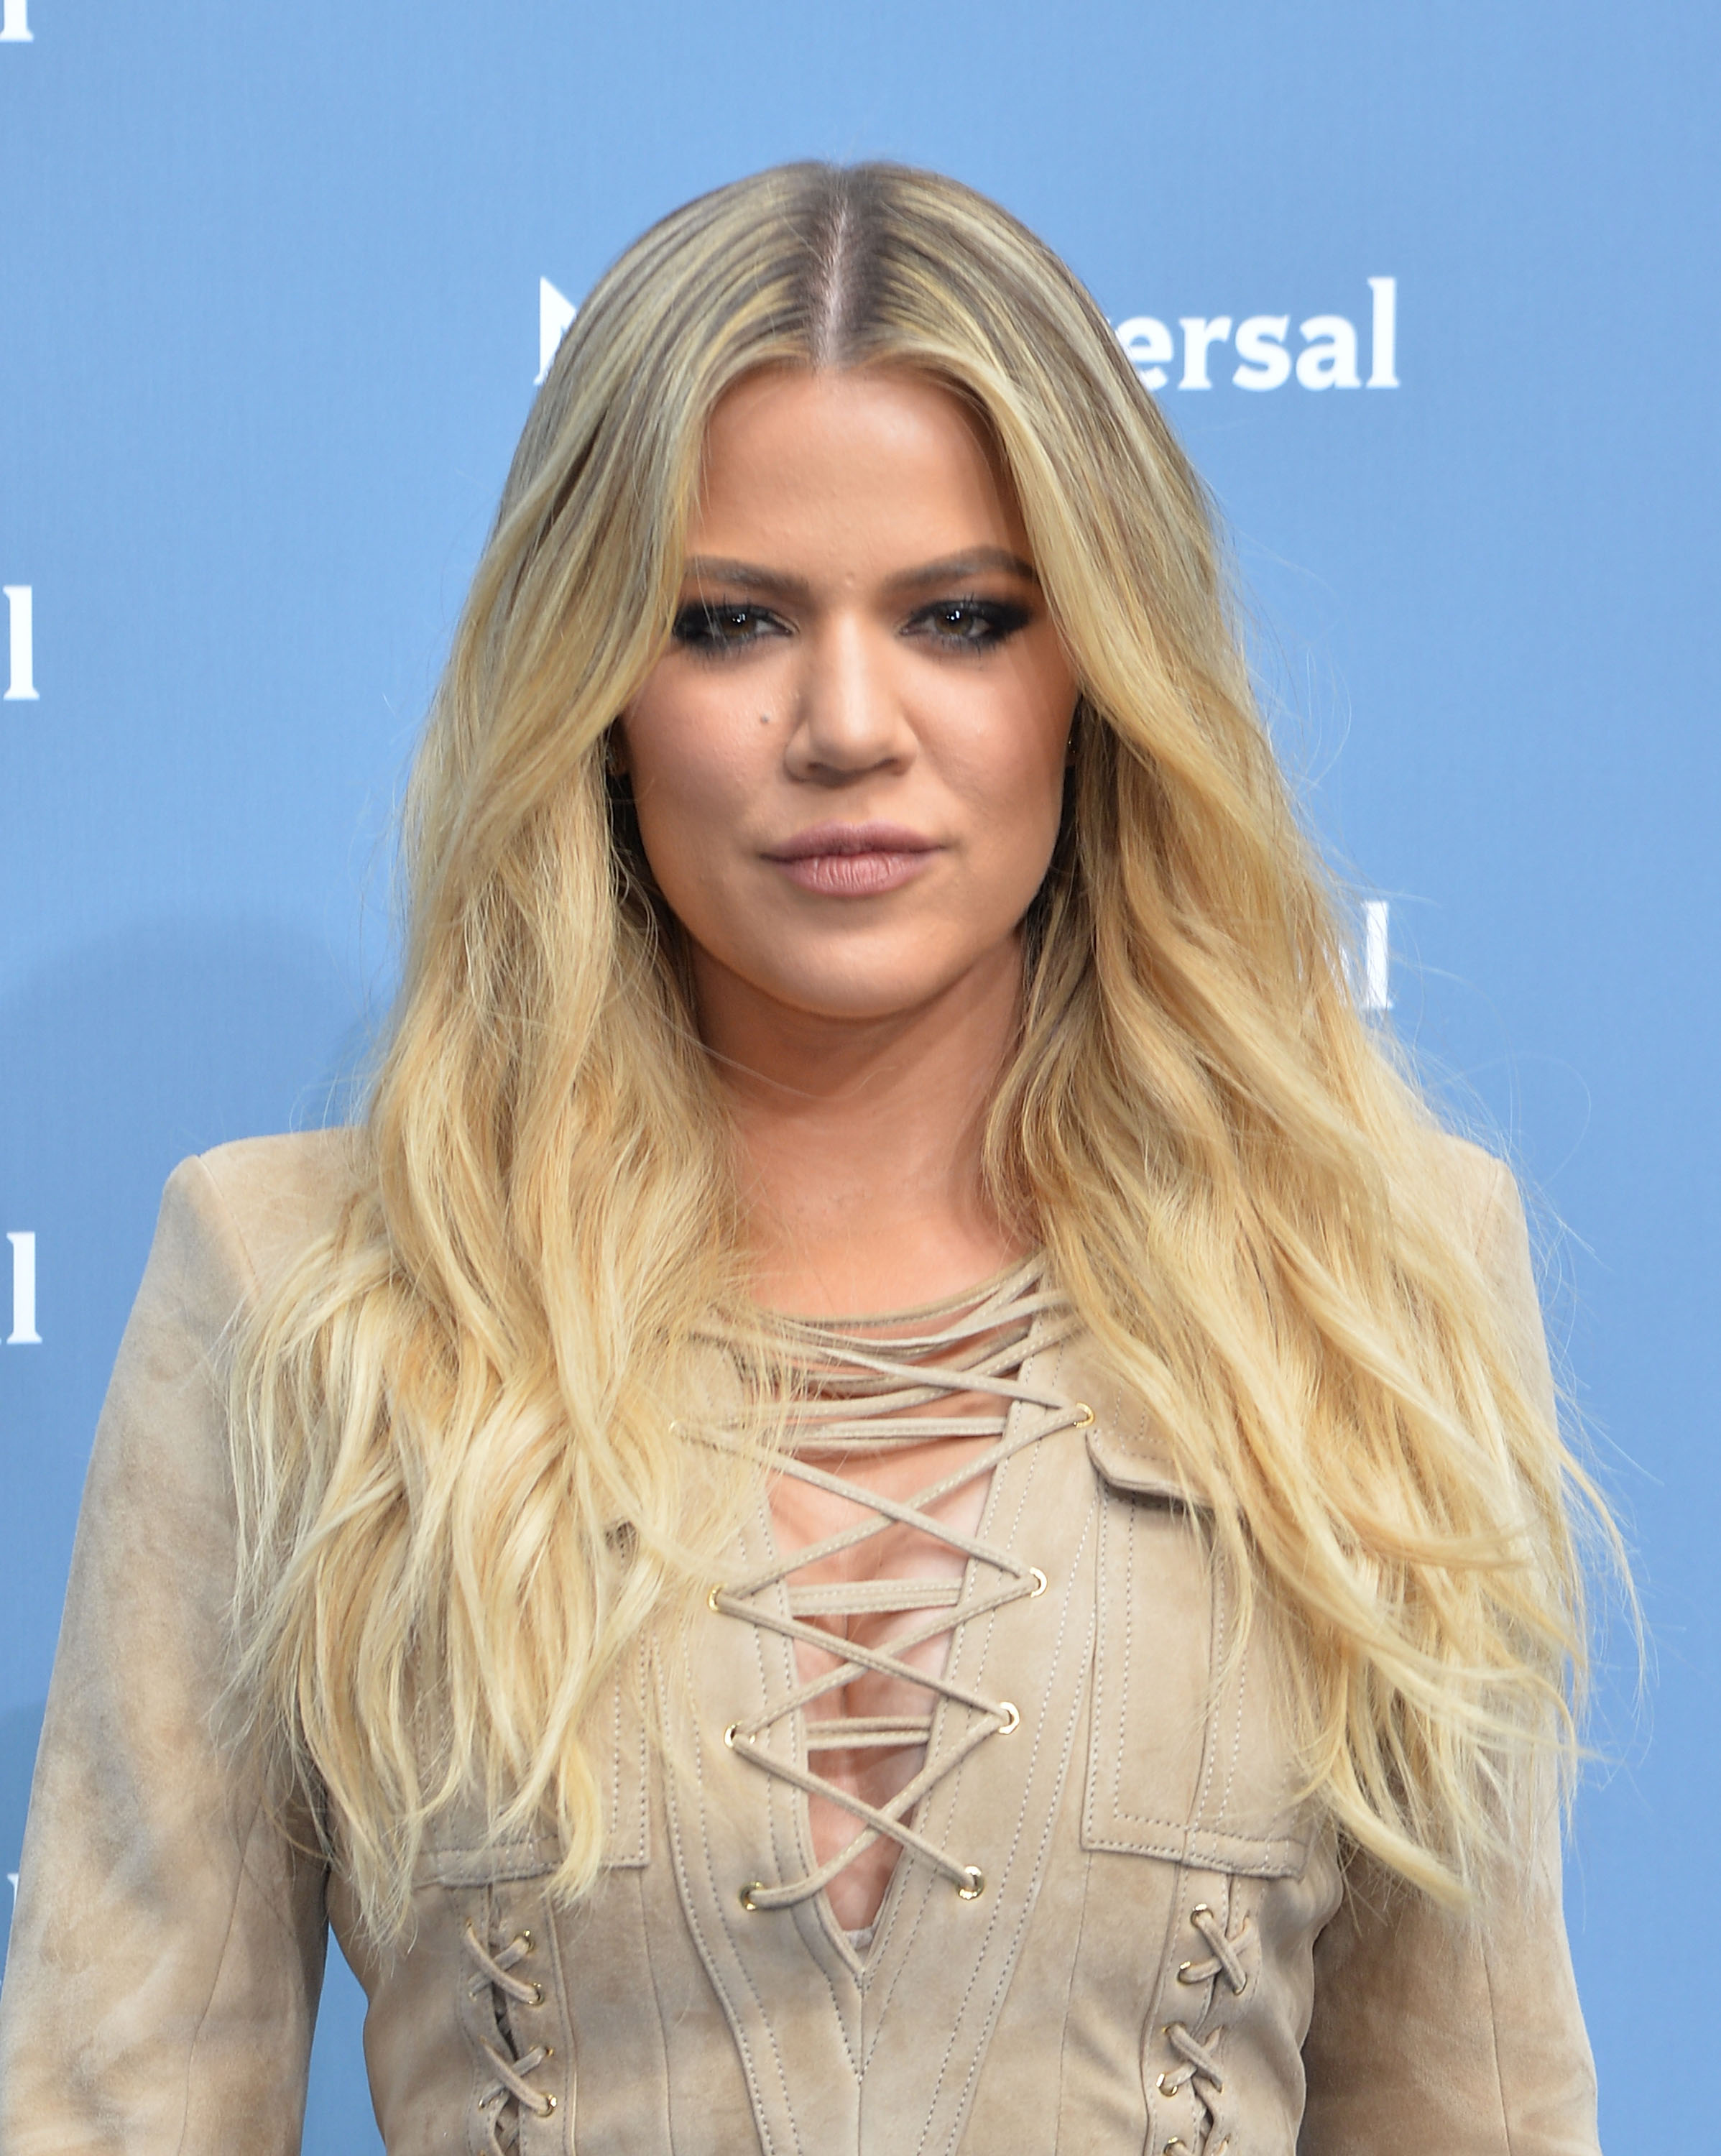 Khloe Kardashian Cut Her Hair Shorter It S Her Most Dramatic Chop